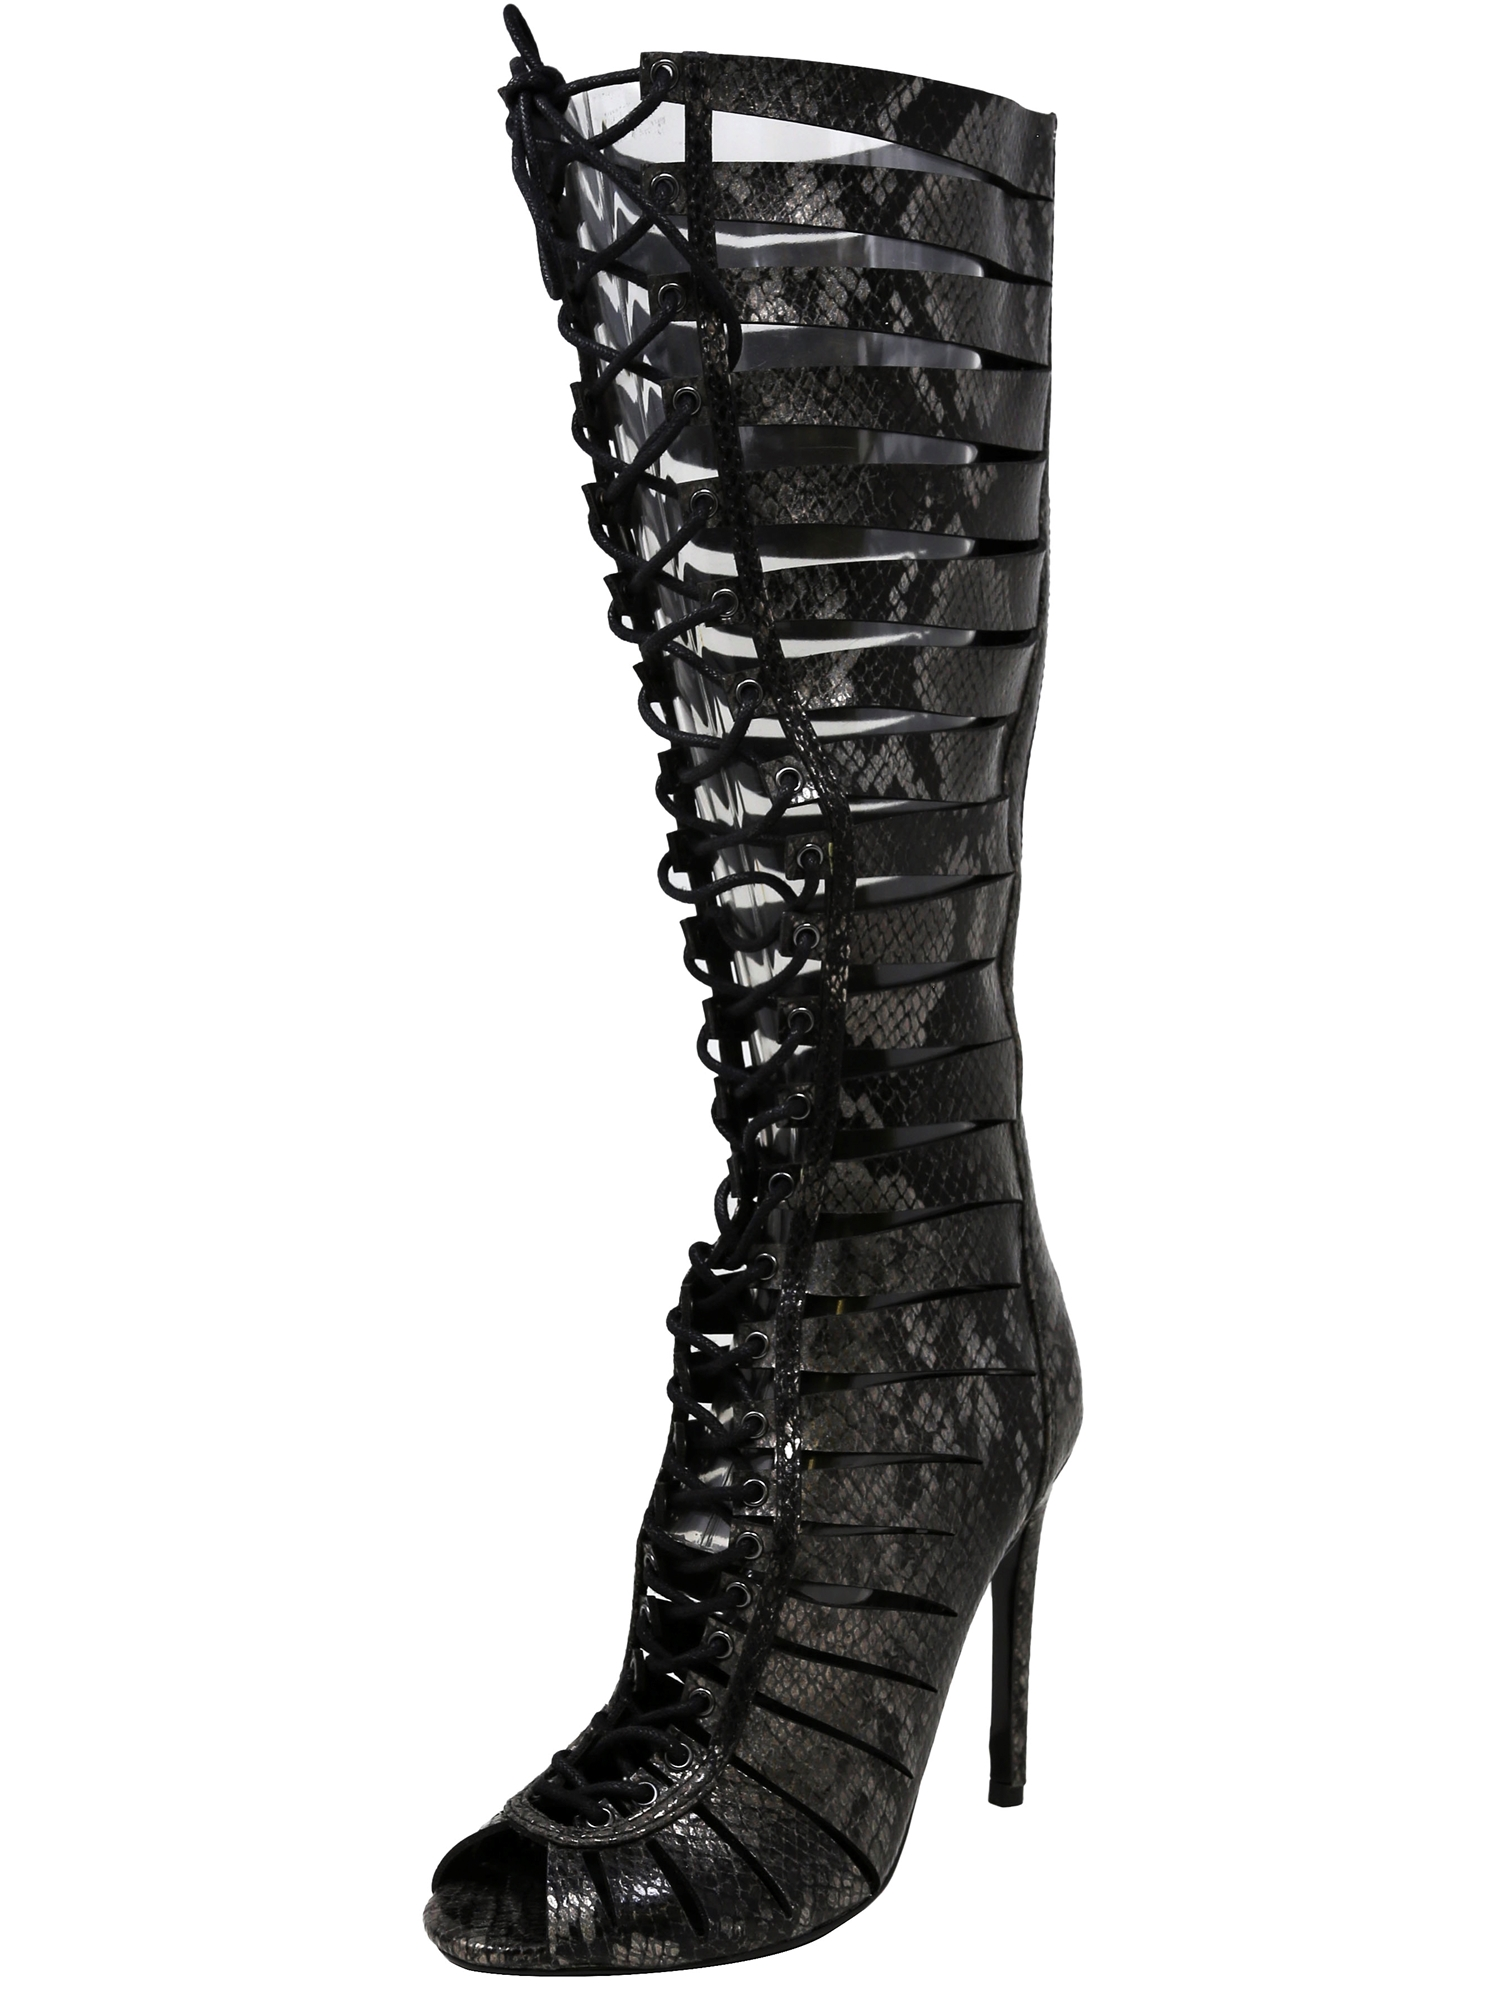 5fbdd3d8bf2 Steve Madden Women s Cryptic Black Snake Mid-Calf Leather Pump - 7.5M